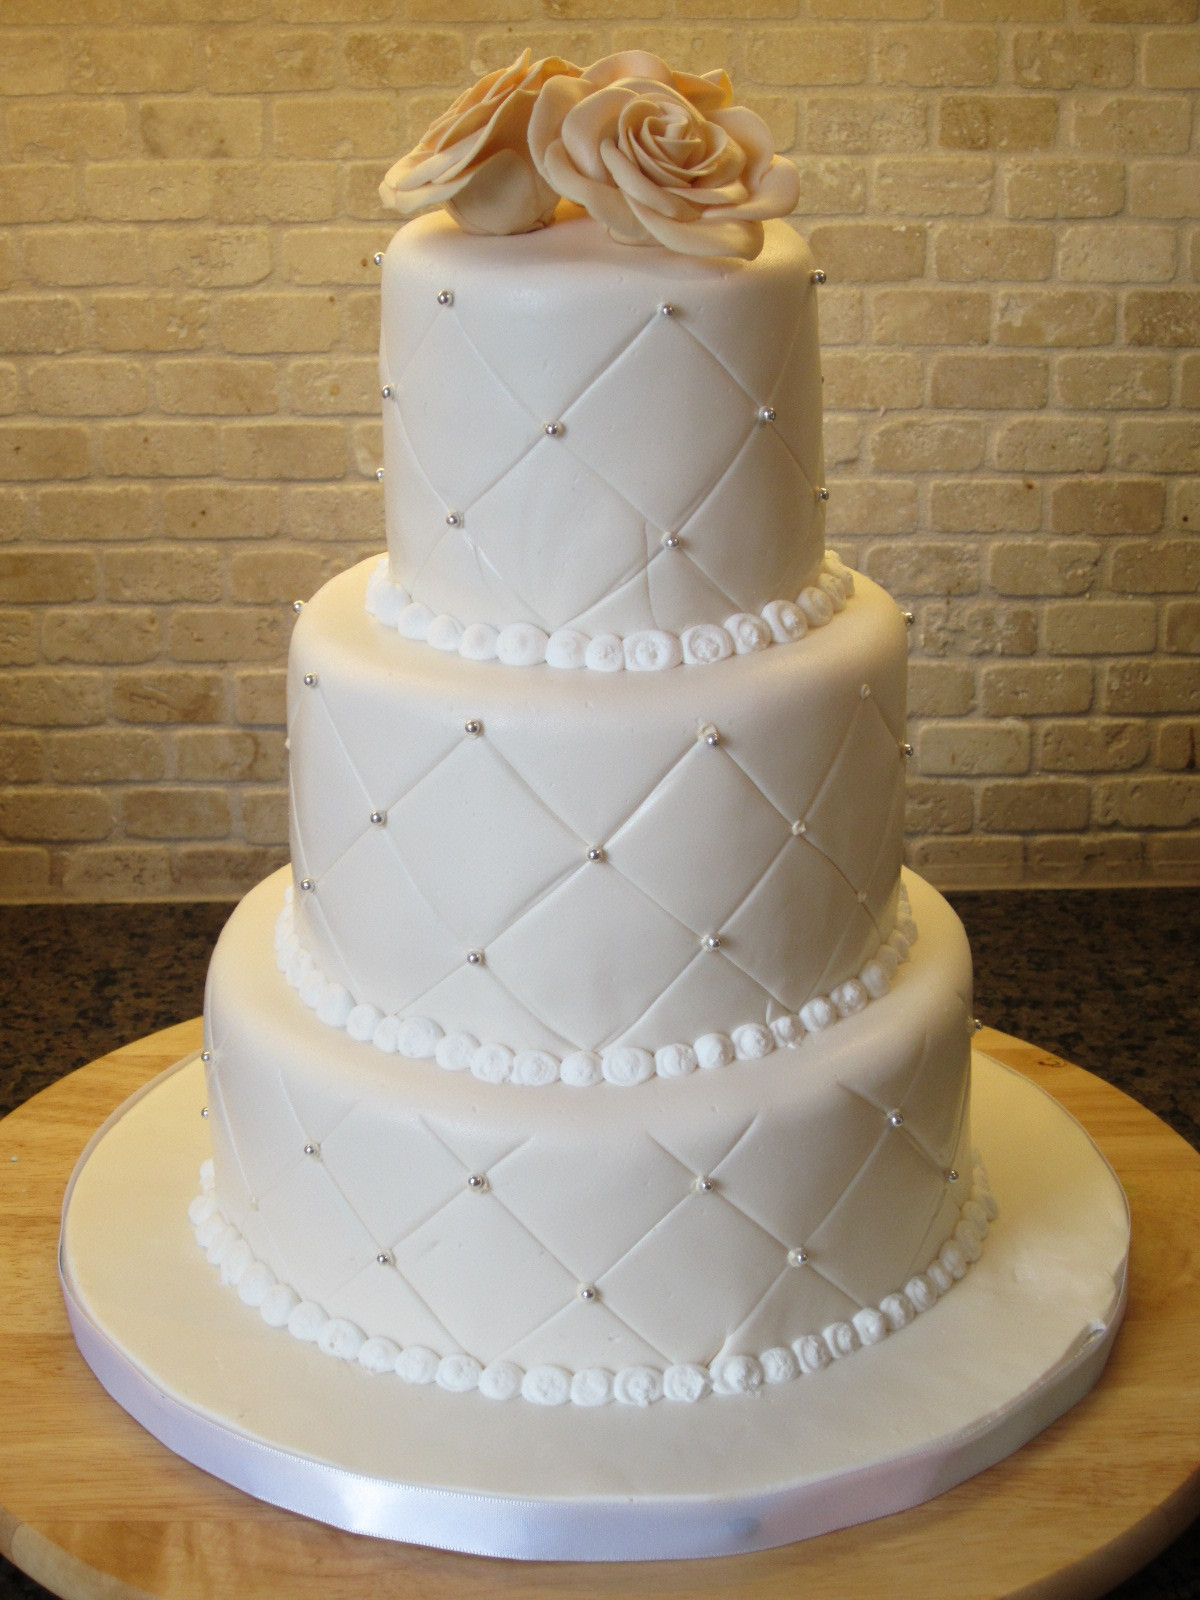 Best Wedding Cakes In Houston  Wedding cakes Houston Tx Get affordable cheap priced